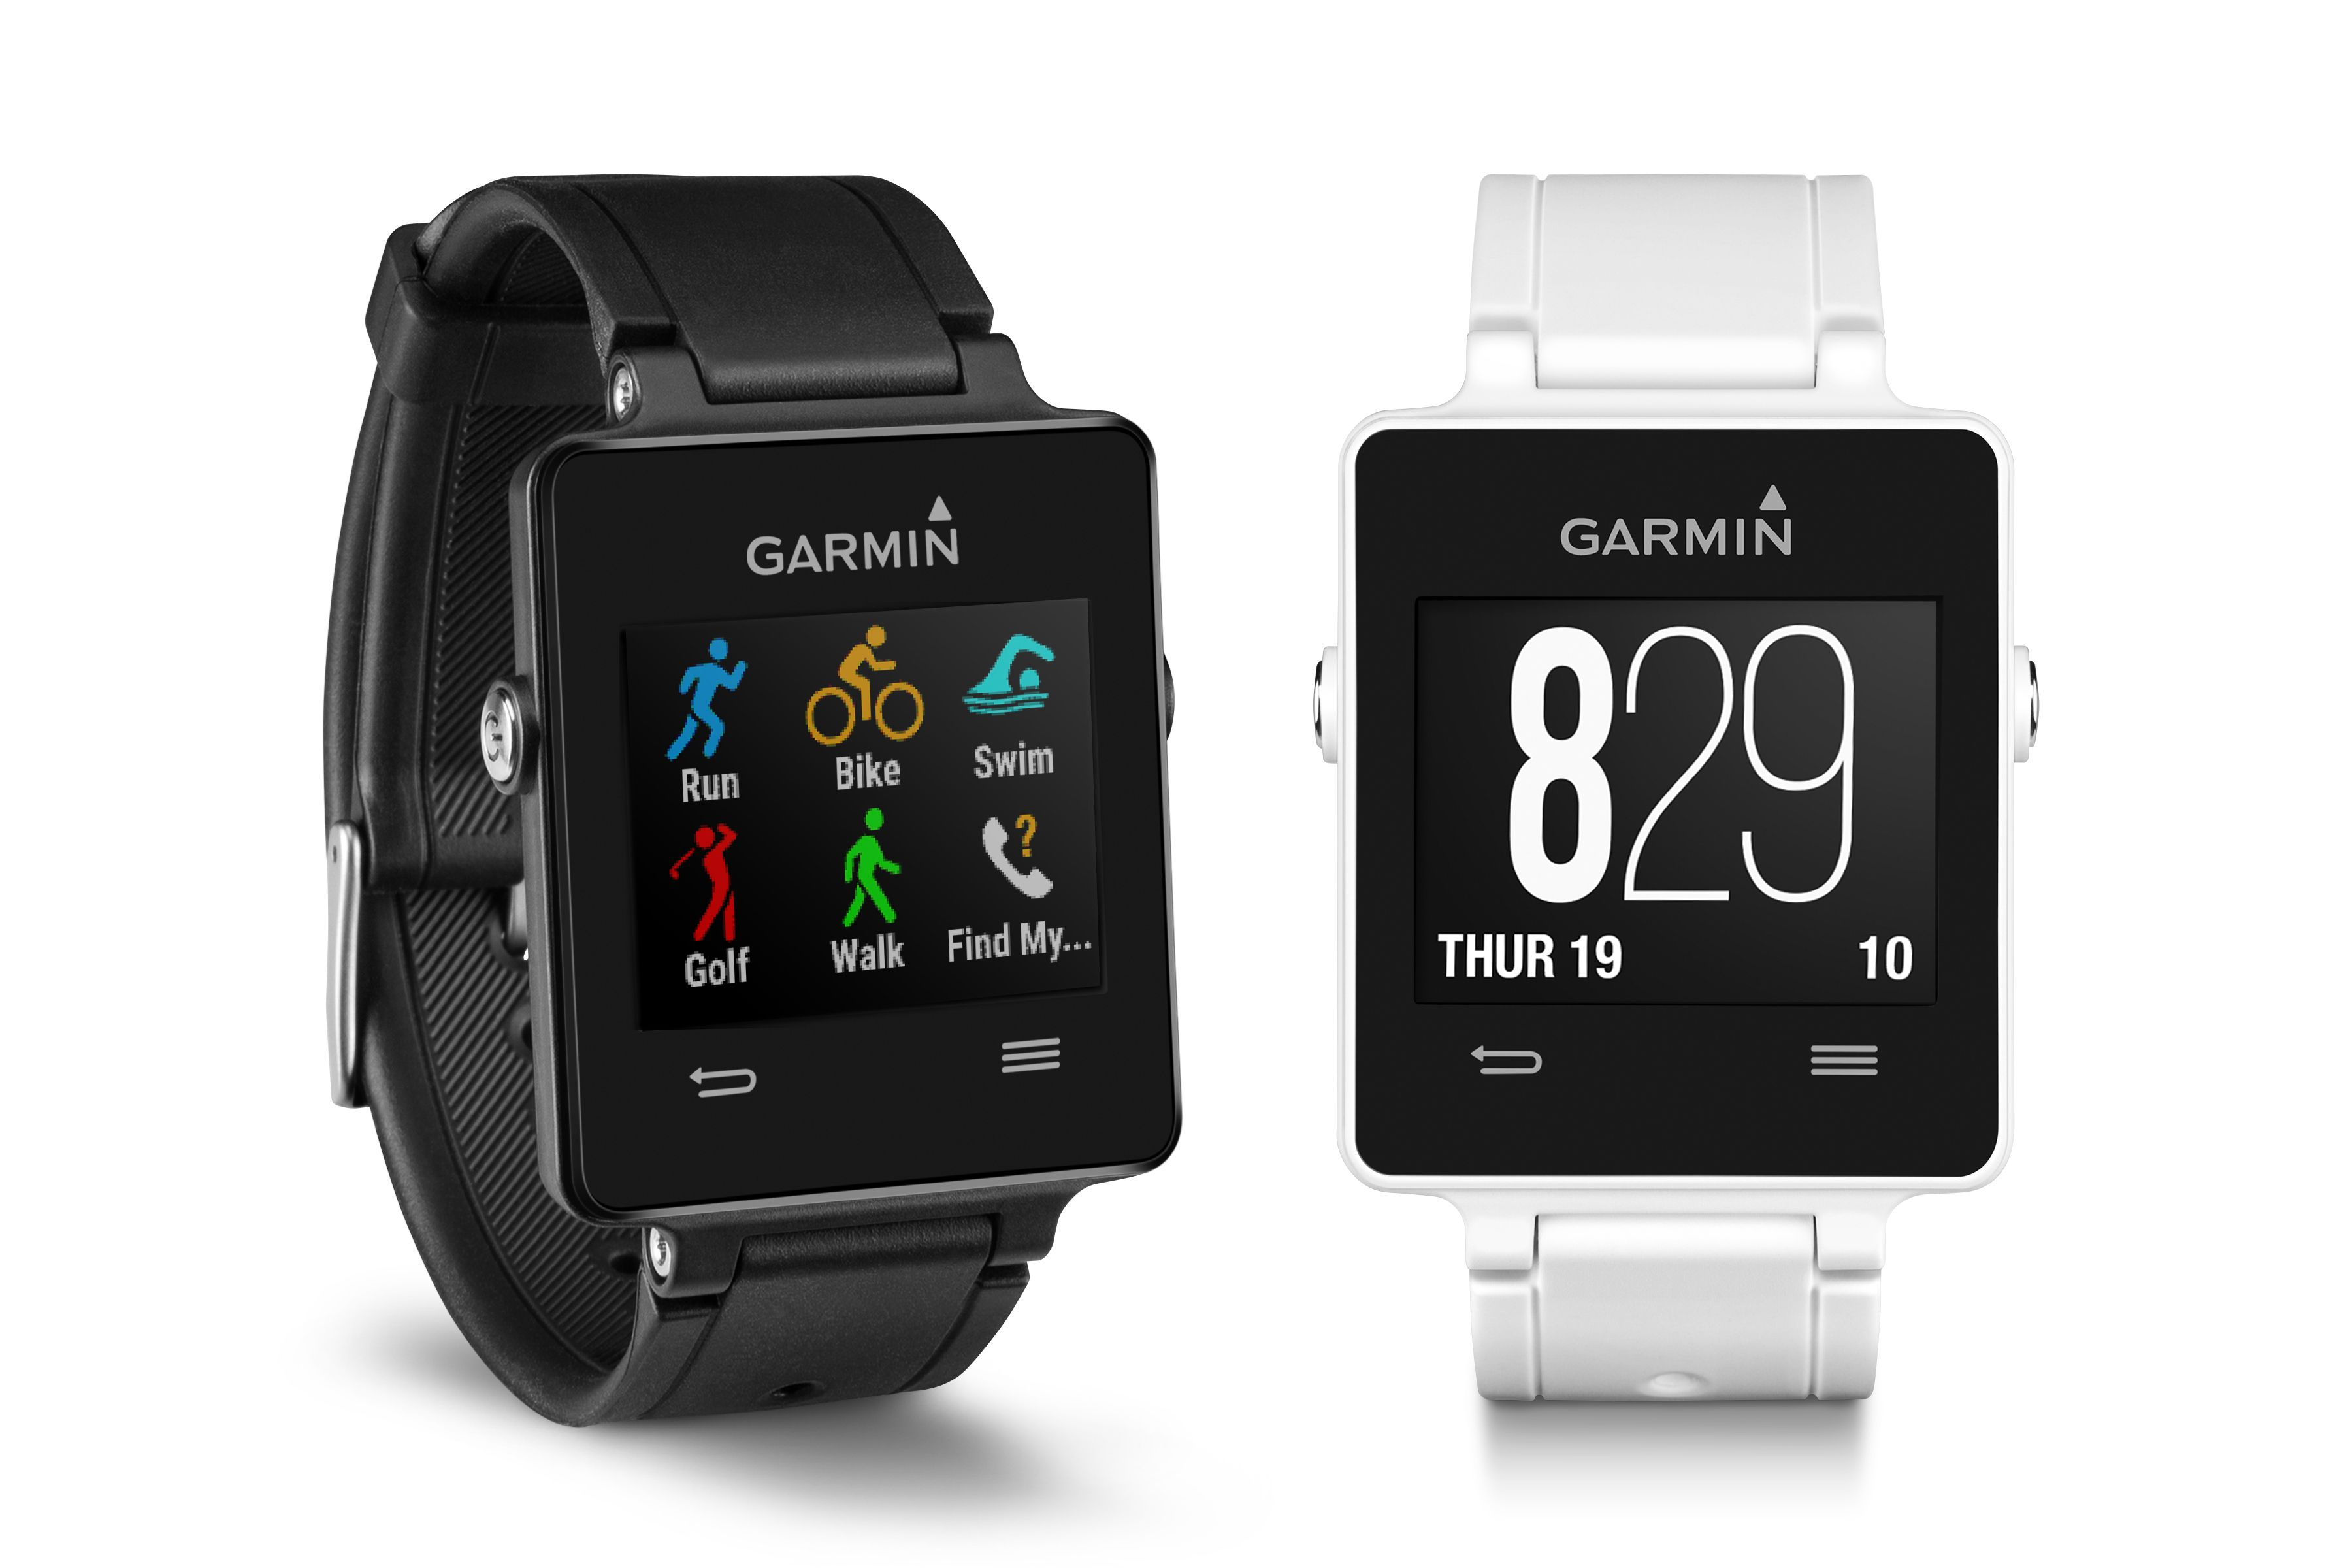 Garmin announces three wildly different smartwatches ...